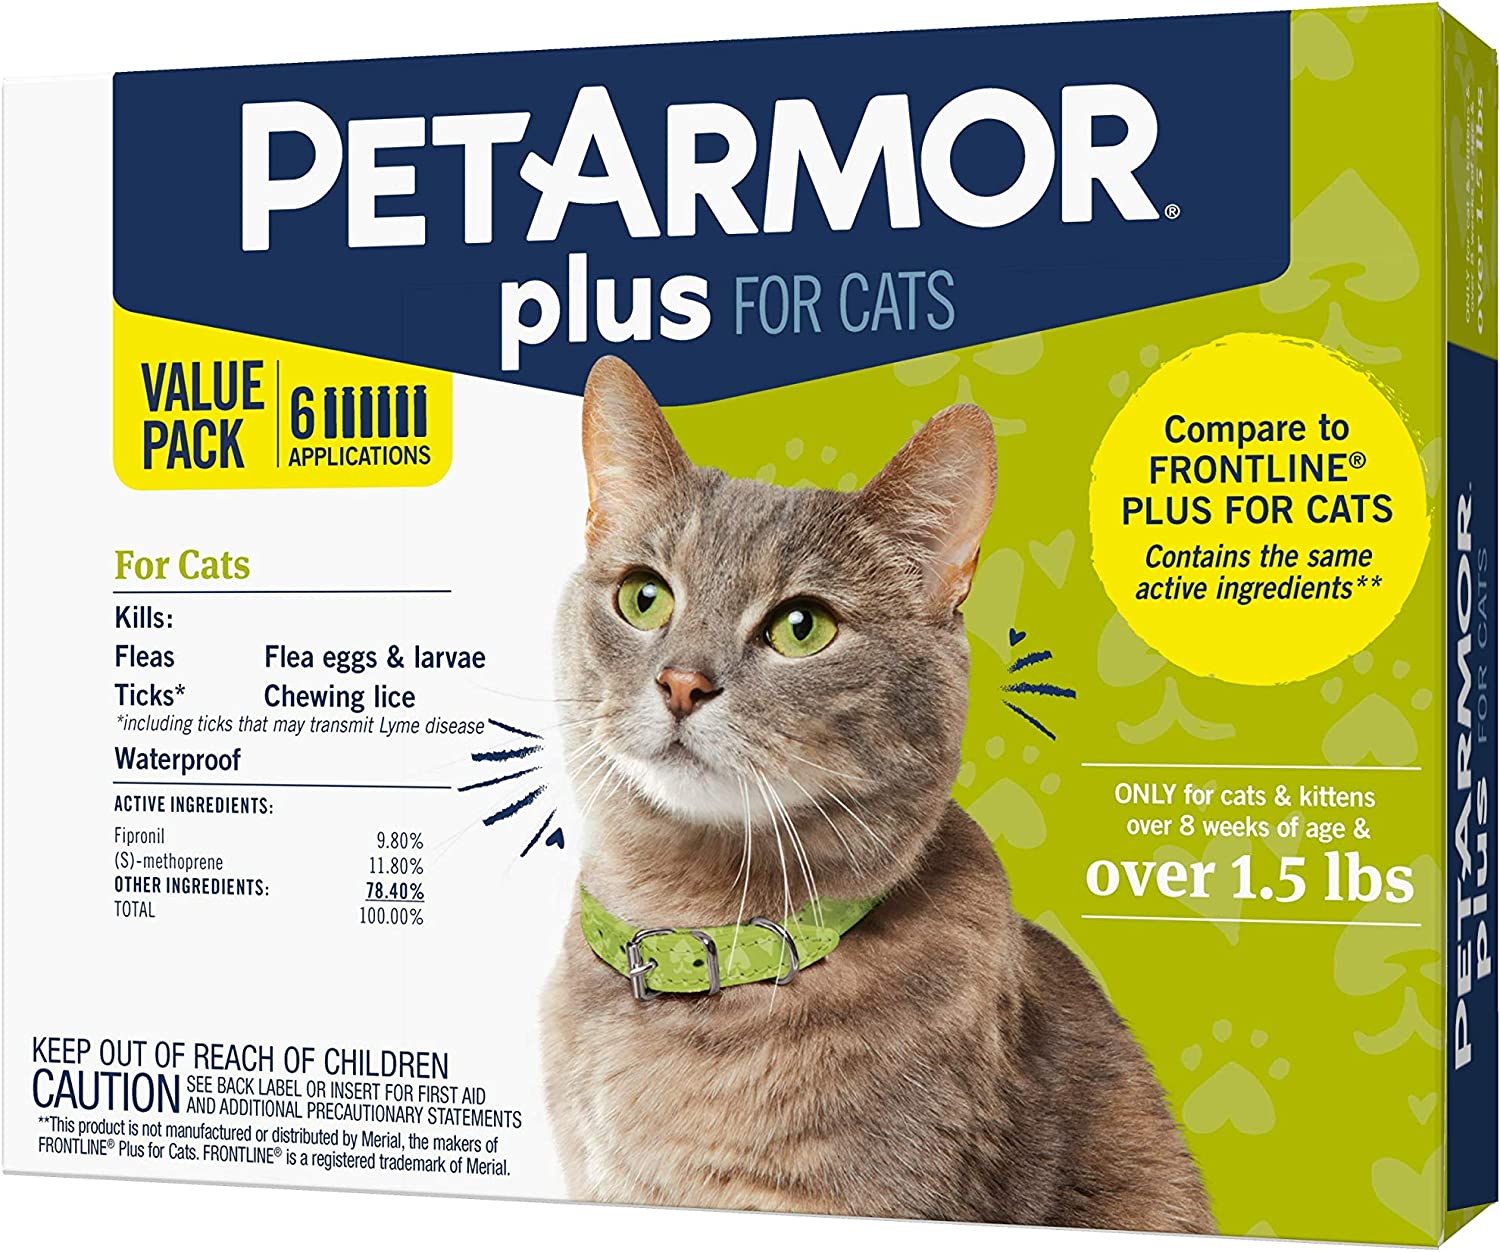 PetArmor Plus for Cats, Flea & Tick Prevention for Cats (Over 1.5 lb), Includes 6 Month Supply of Topical Flea Treatments, white, 6 count